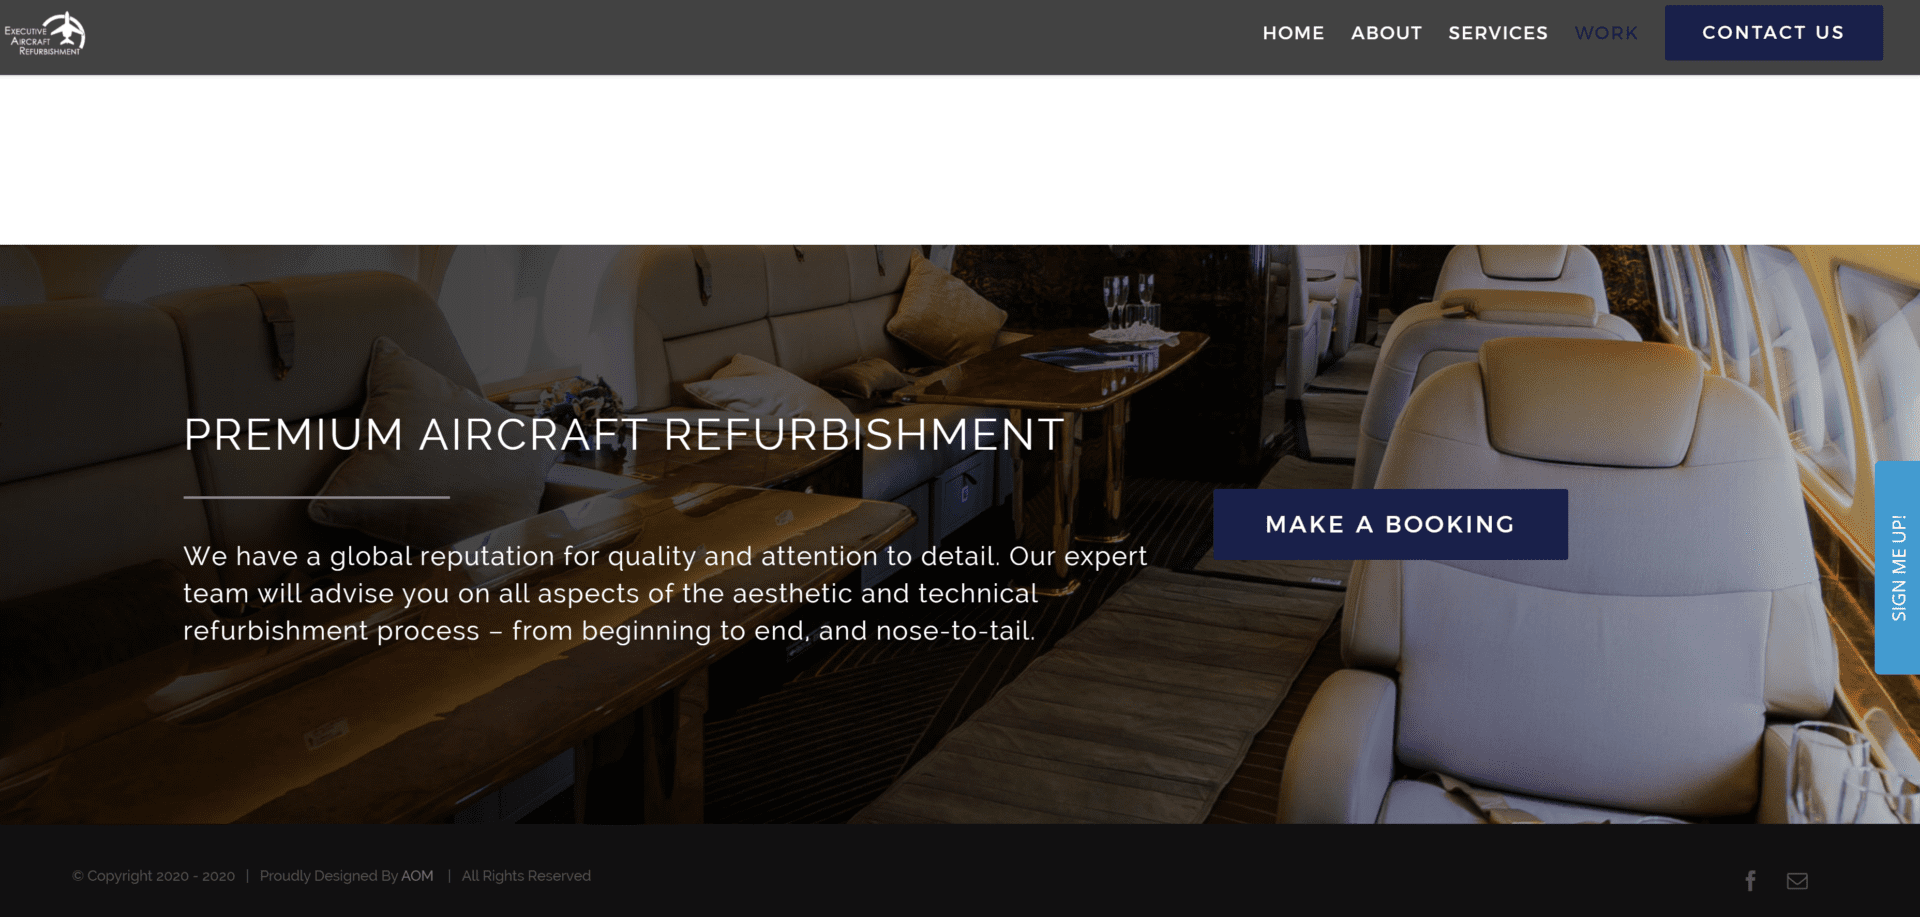 Executive Aircraft Refurbishment, AOM, Digital Marketing Agency, Recent Work